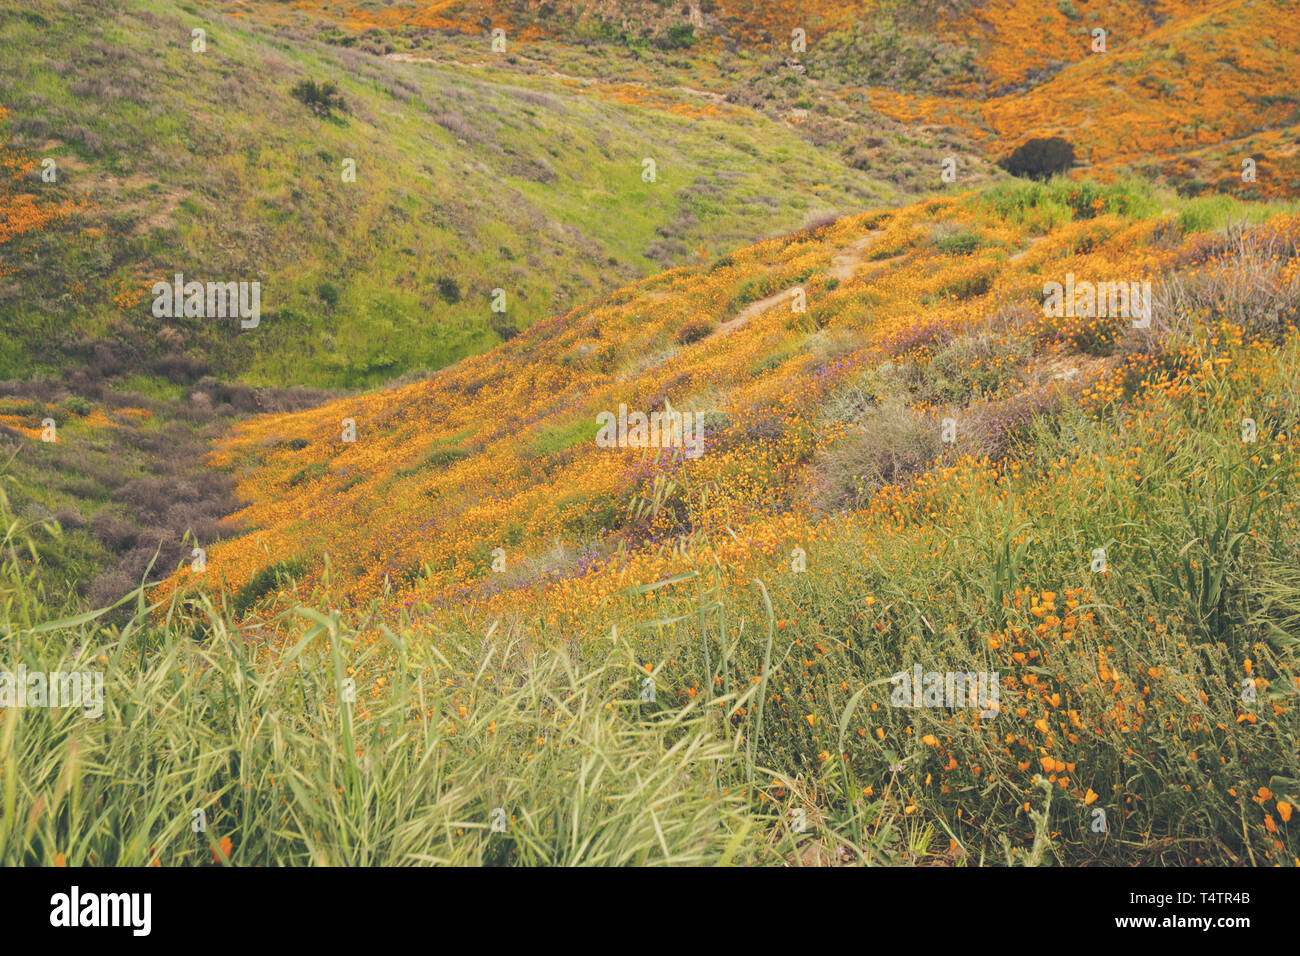 Landscape in Walker Canyon during the superbloom in California. The poppies covering the mountain valleys and ridges - Stock Image